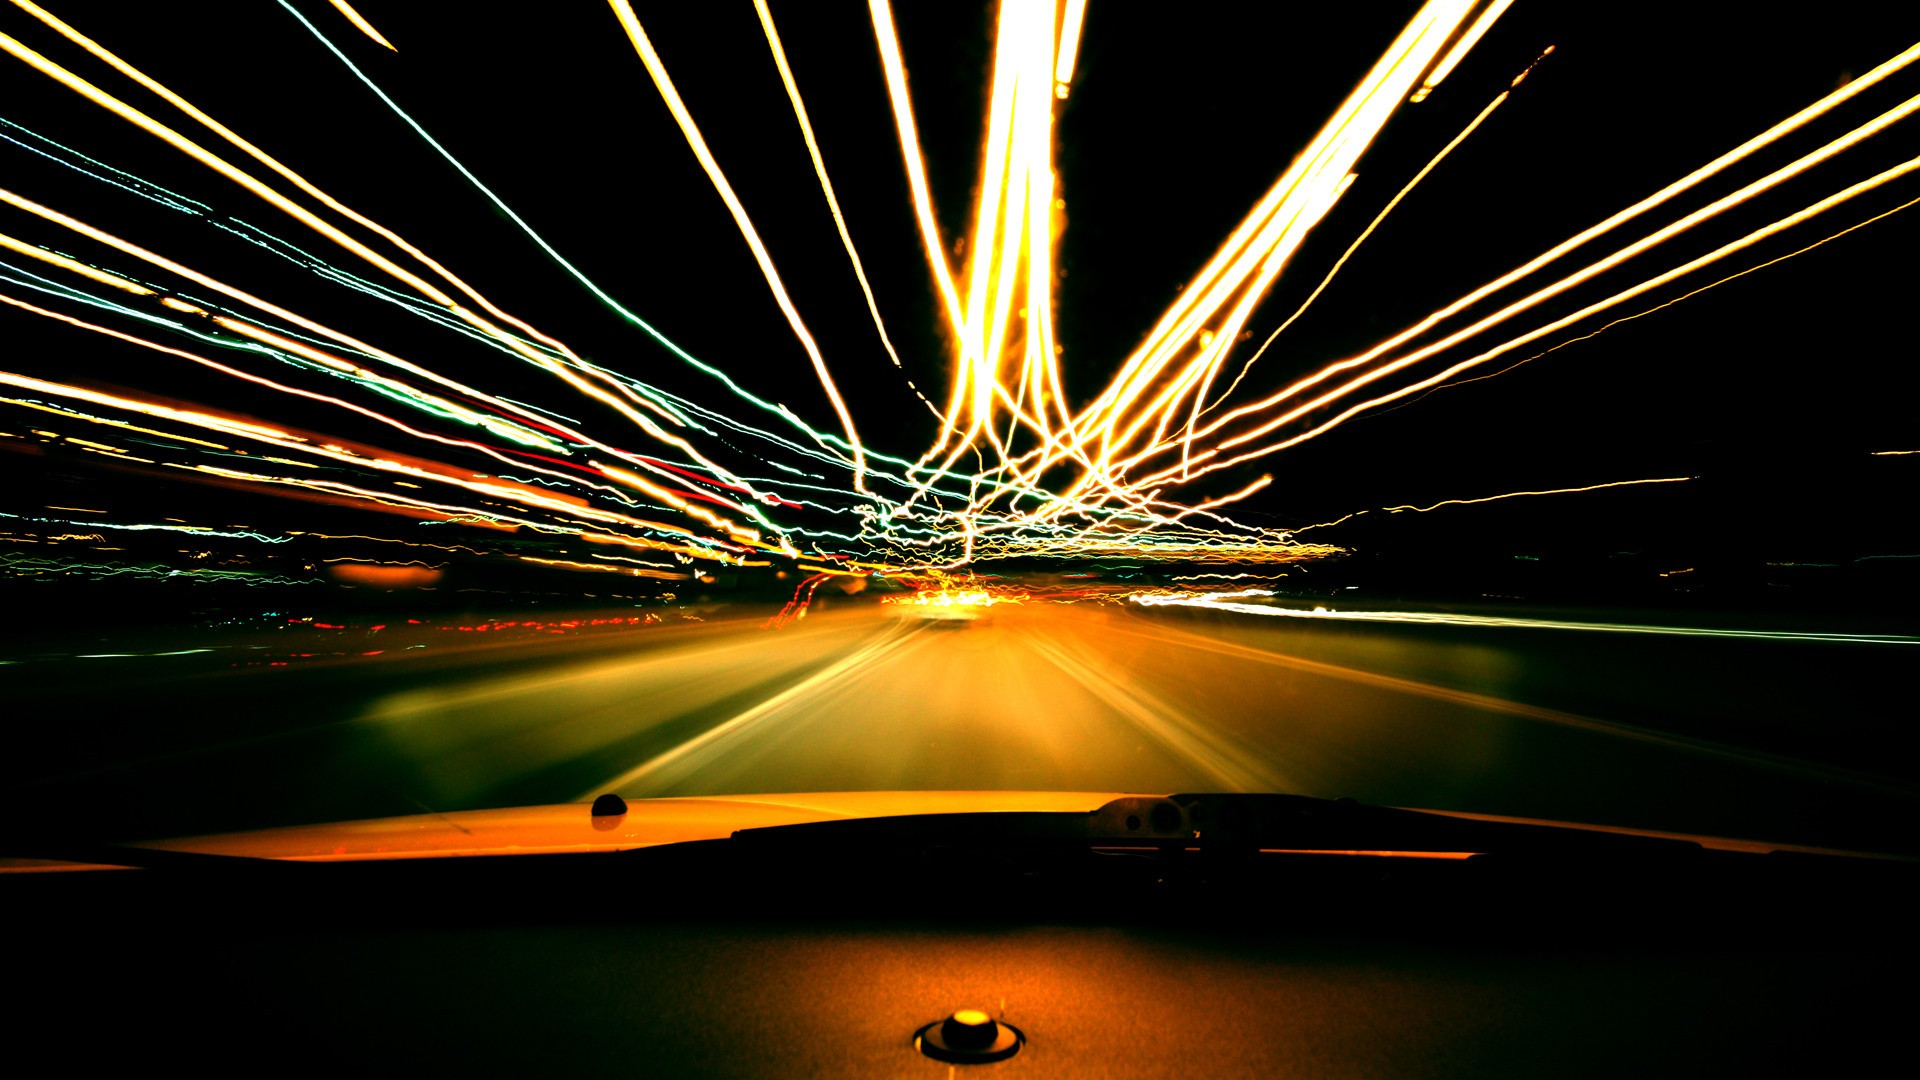 lights roads long exposure nightlights dashboards car interiors colors